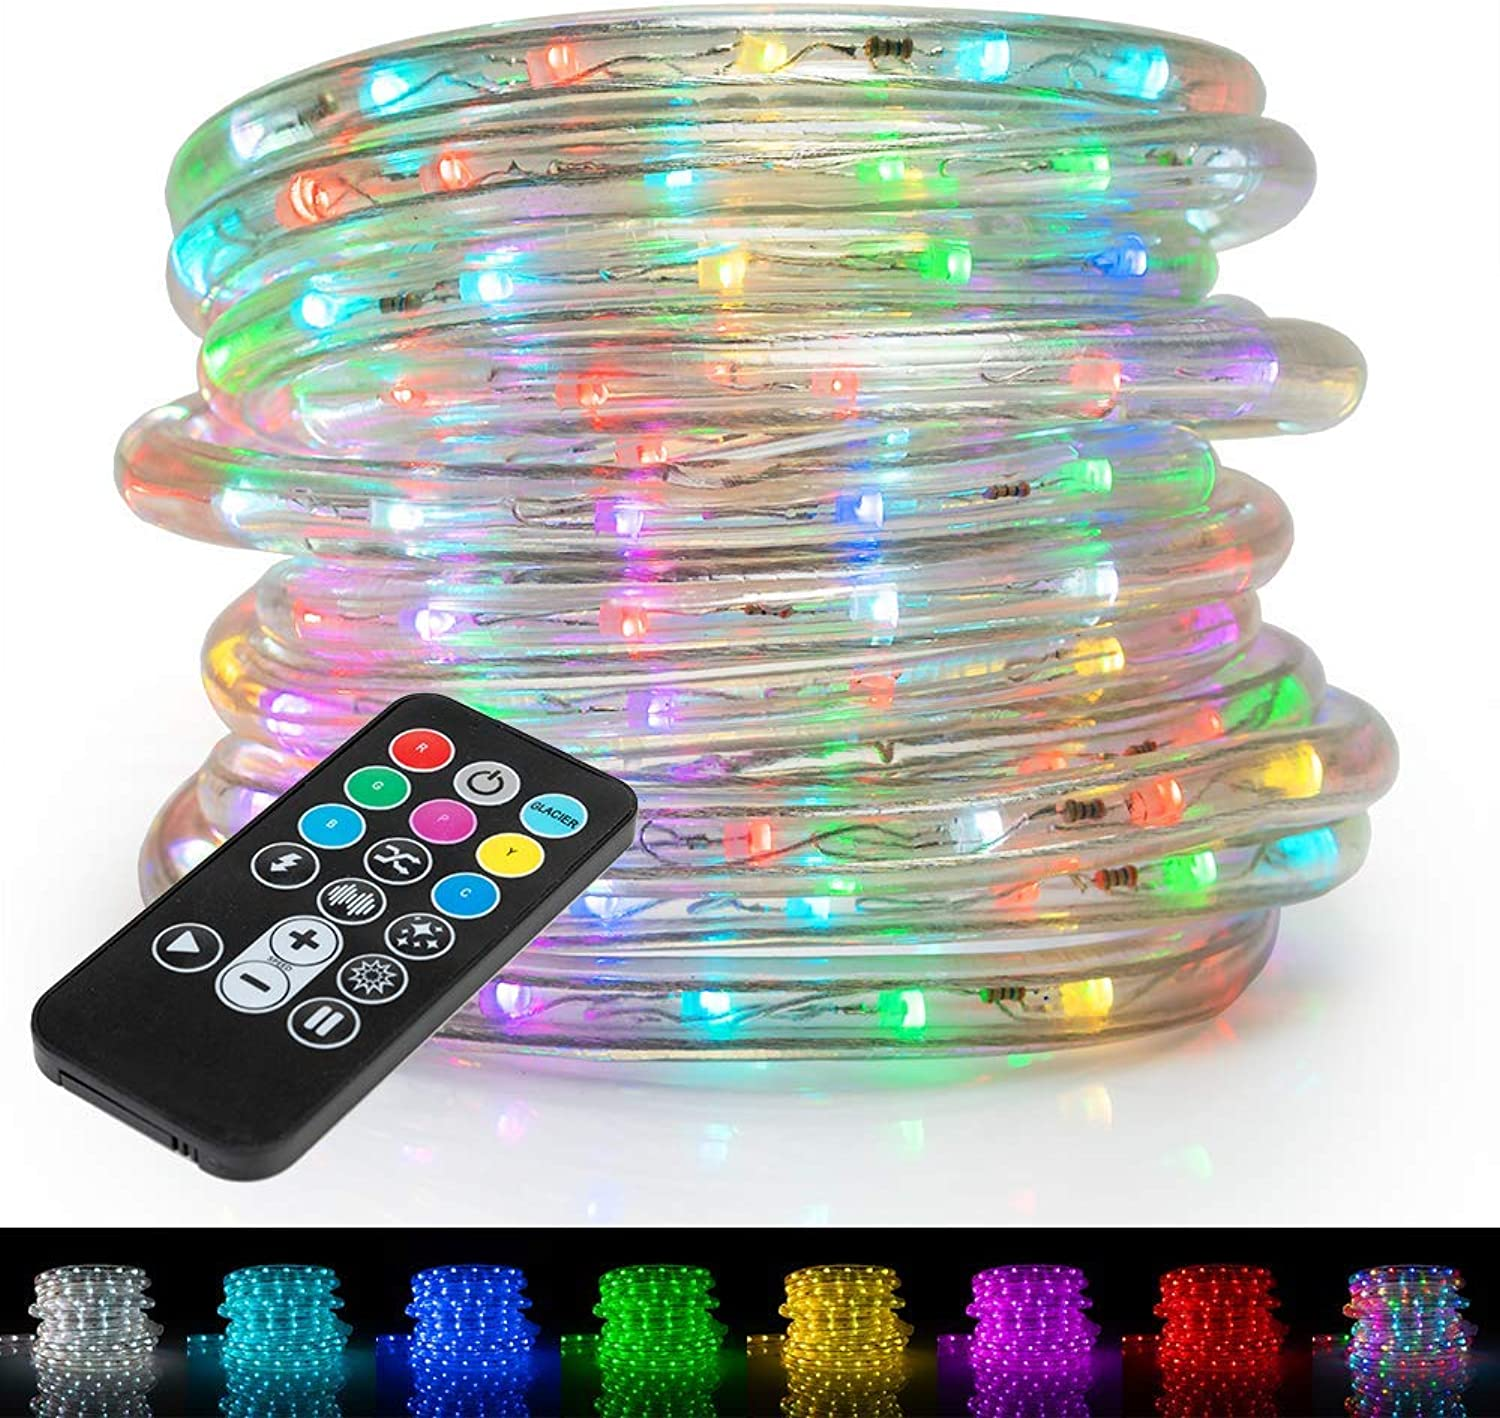 West Ivory 1 2  (50' feet) Multi-colors + 8 color Modes & 4 Lighting Effects LED Rope Lights w Remote Controller 2 Wire Accent Extendable Holiday Christmas Lighting   ETL Certified